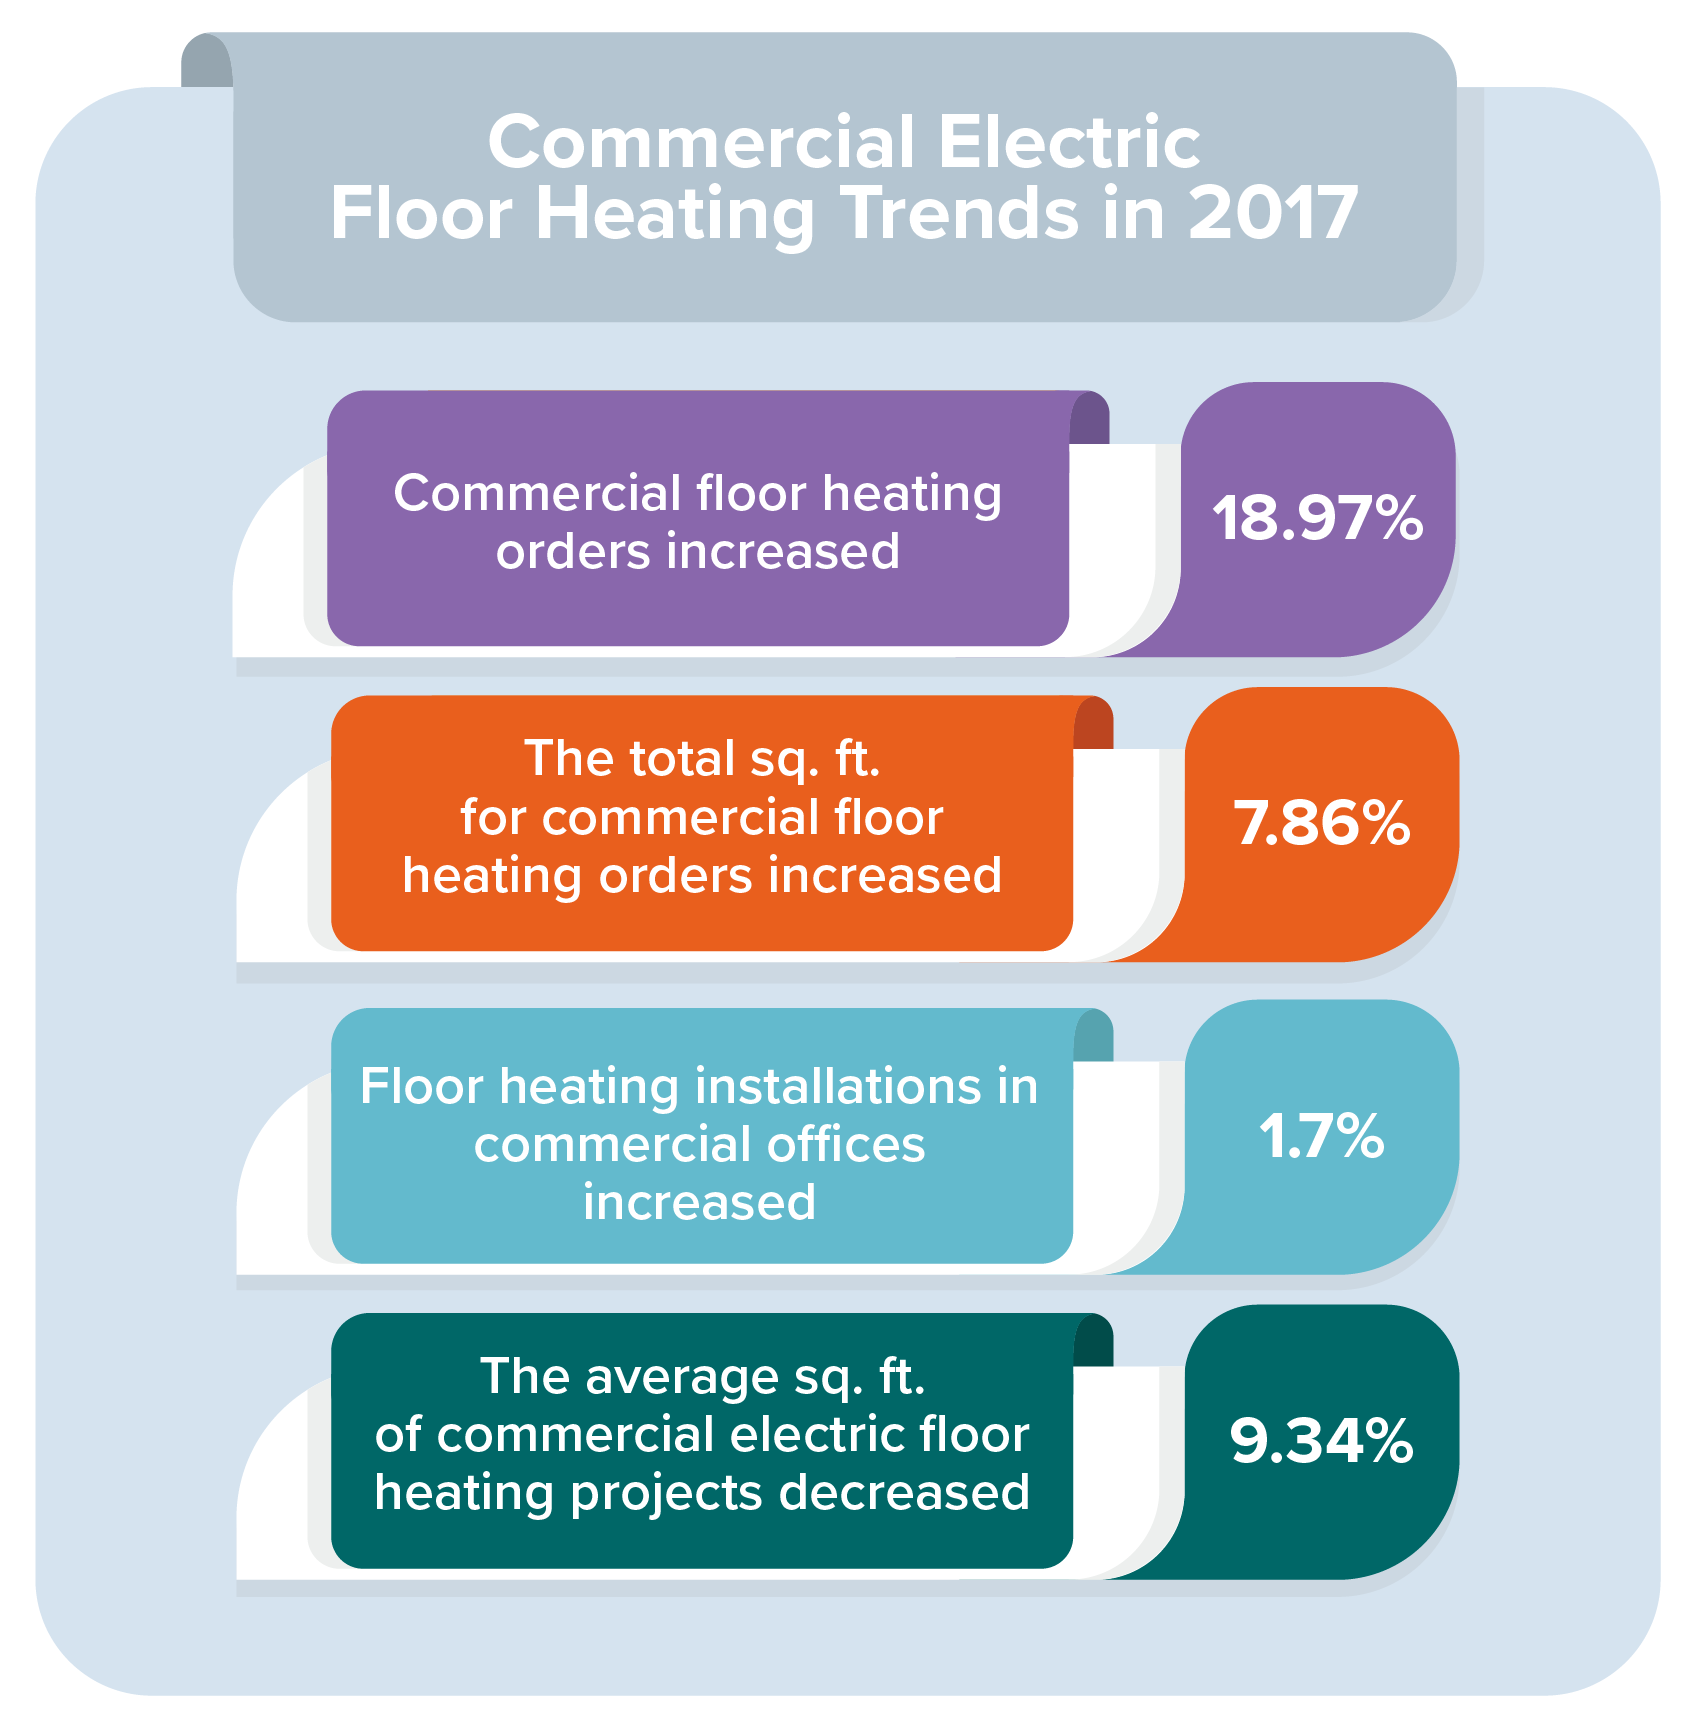 Snow-melting Cables Are a Top In-floor Heating Trend, According to ...